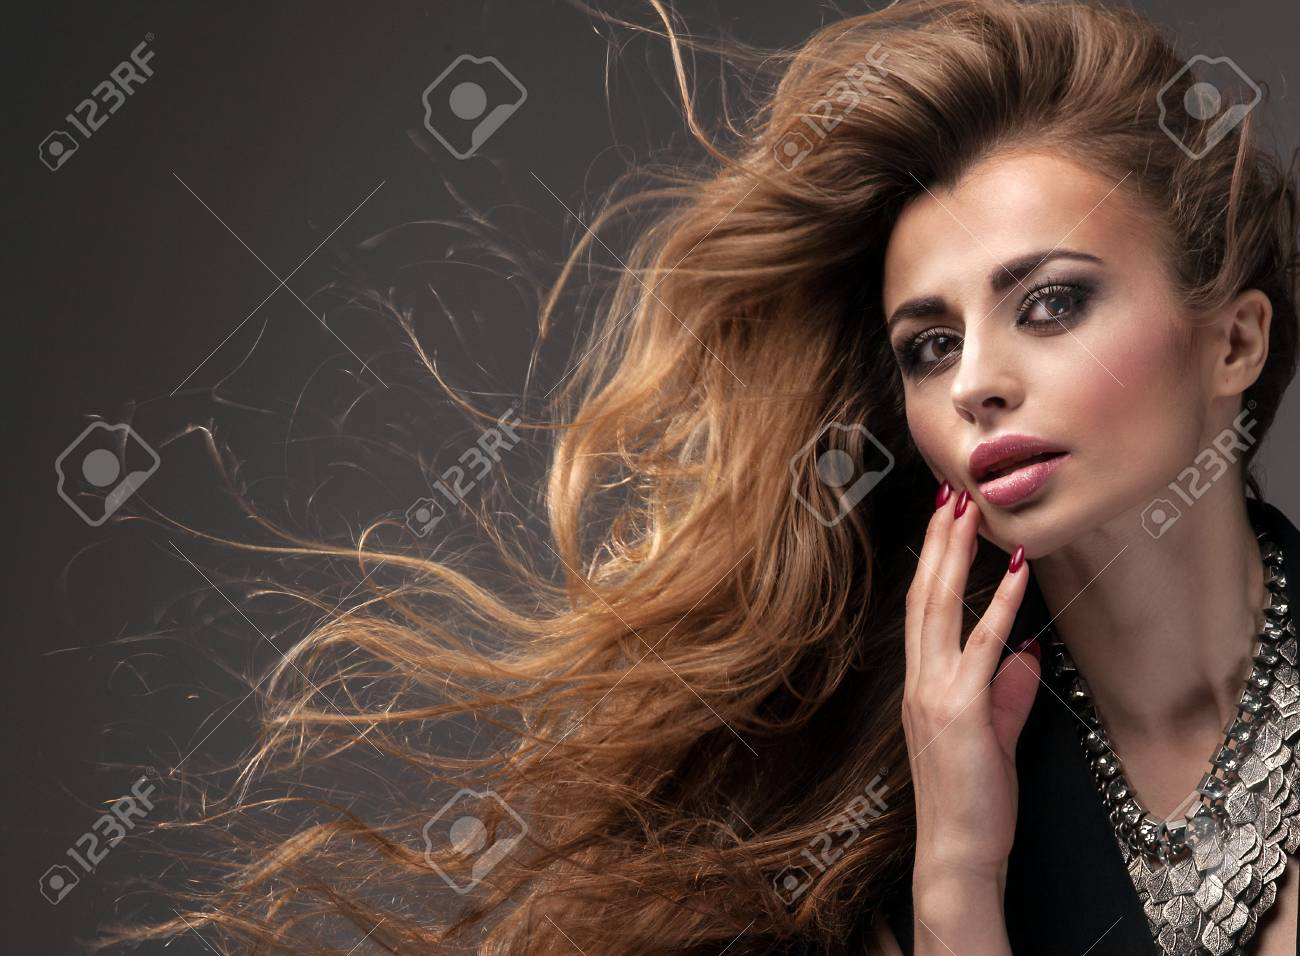 Beautiful girl with long healthy hair and glamour makeup looking at camera, wearing silver necklace